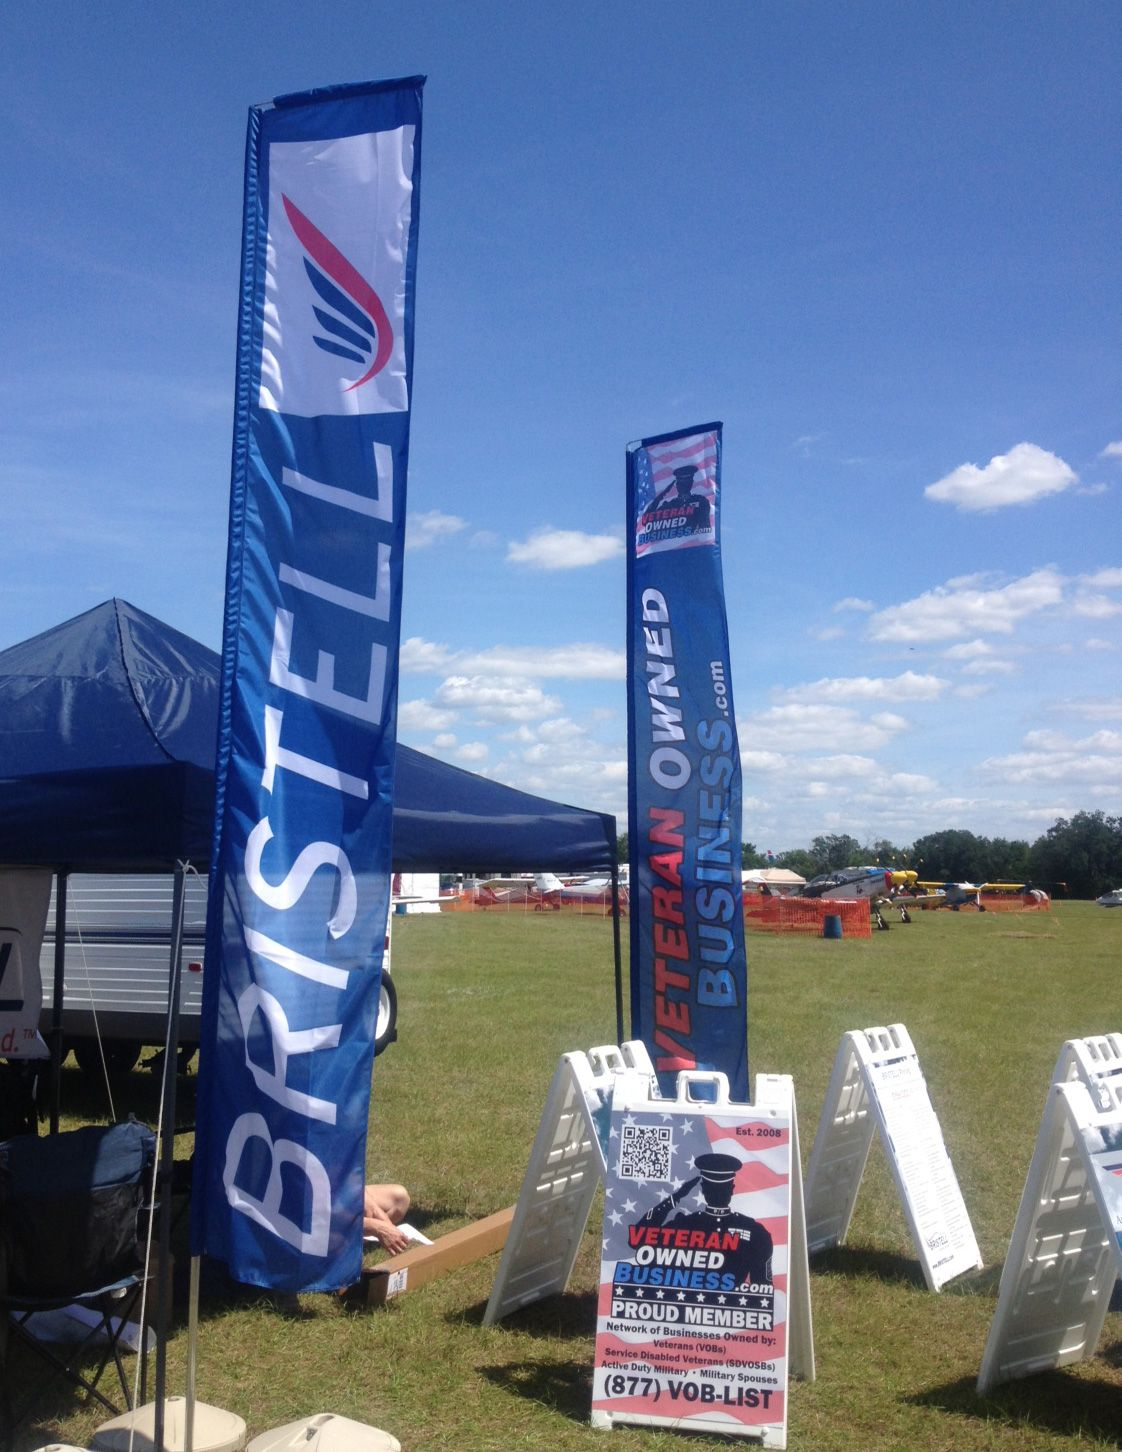 Vob Member Bristell Is Exhibiting At Sun N Fun In Lakeland Florida This Week In Addition To Their Signage Veteran Owned Business Veteran Military Veterans